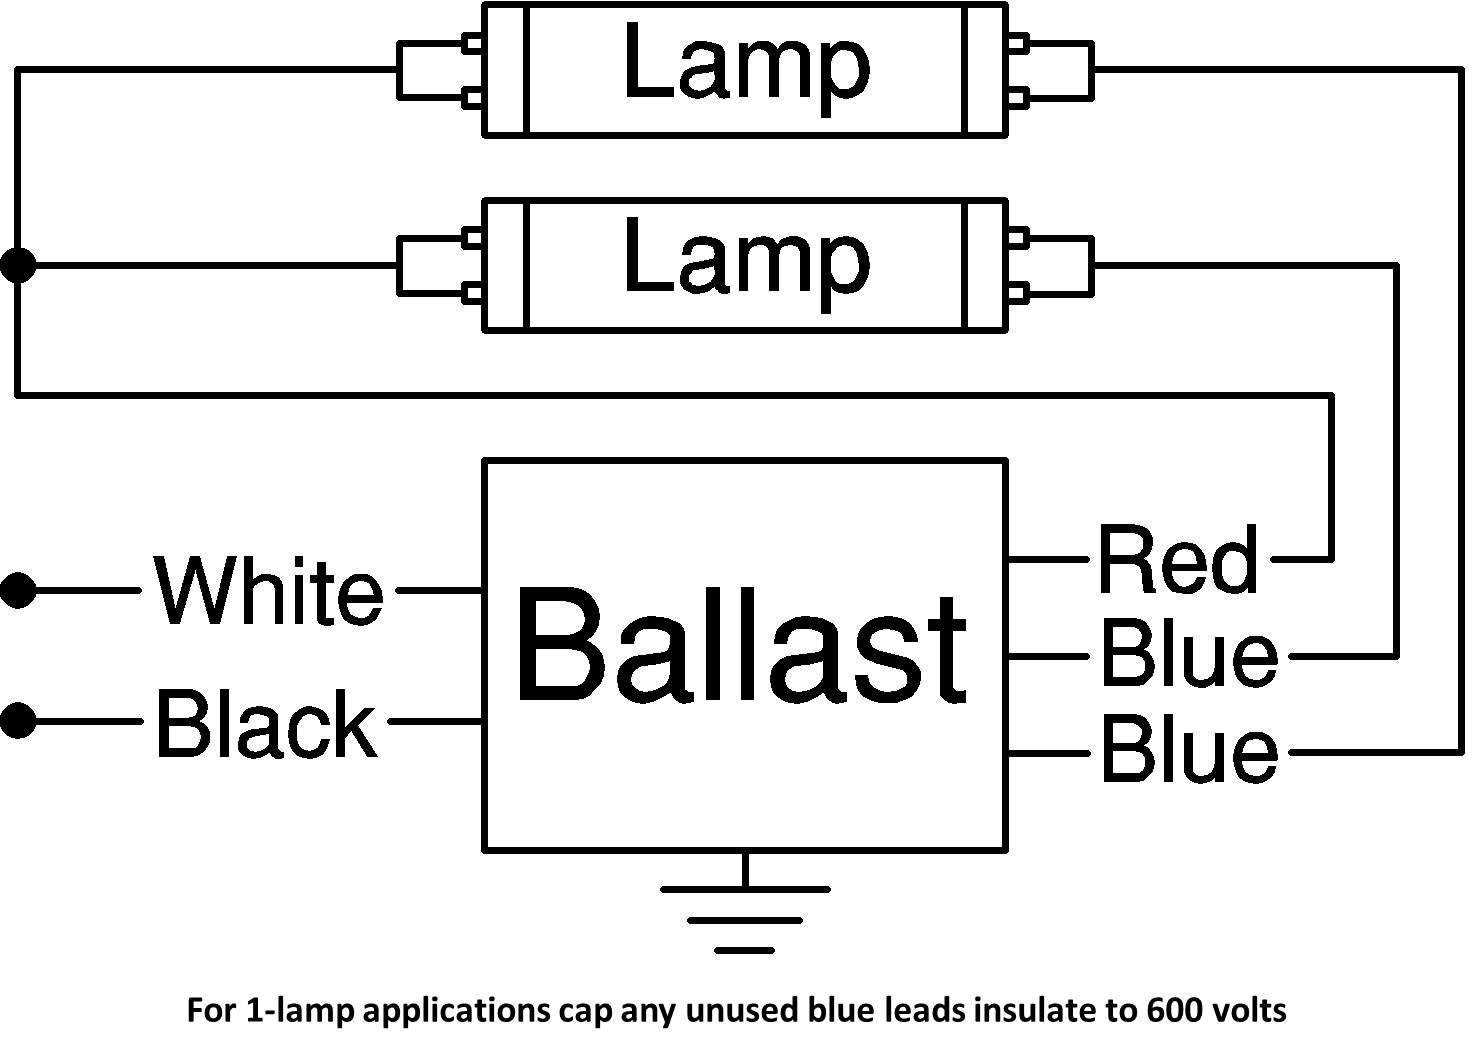 hight resolution of t5ho ballast wiring diagram online wiring diagramwiring diagrams for 4 lamp t5ho ballast best part of